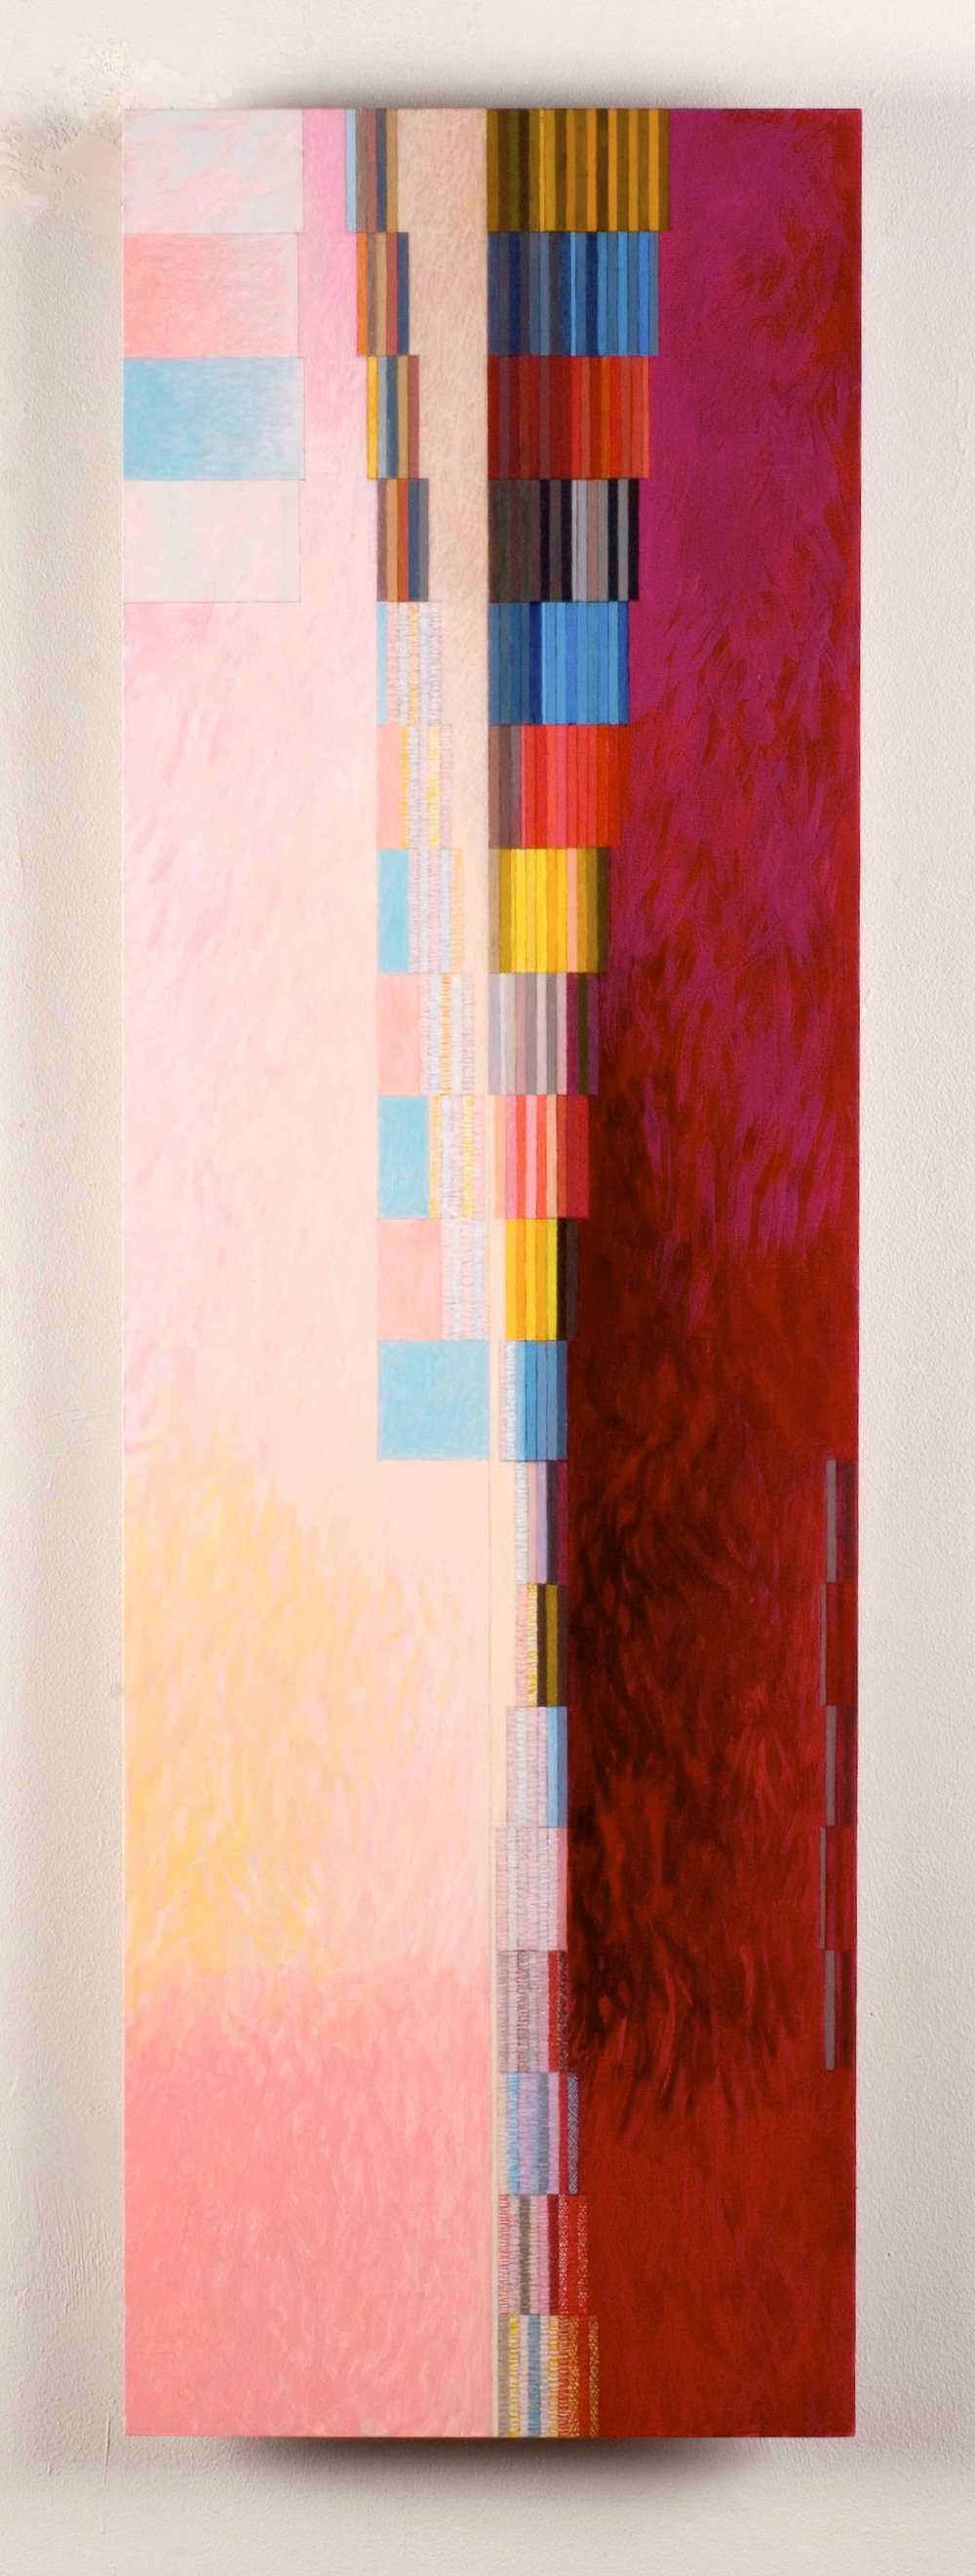 "Kent/Hampshire, 2006, oil on aluminum, 42 3/4""x13 1/2"""